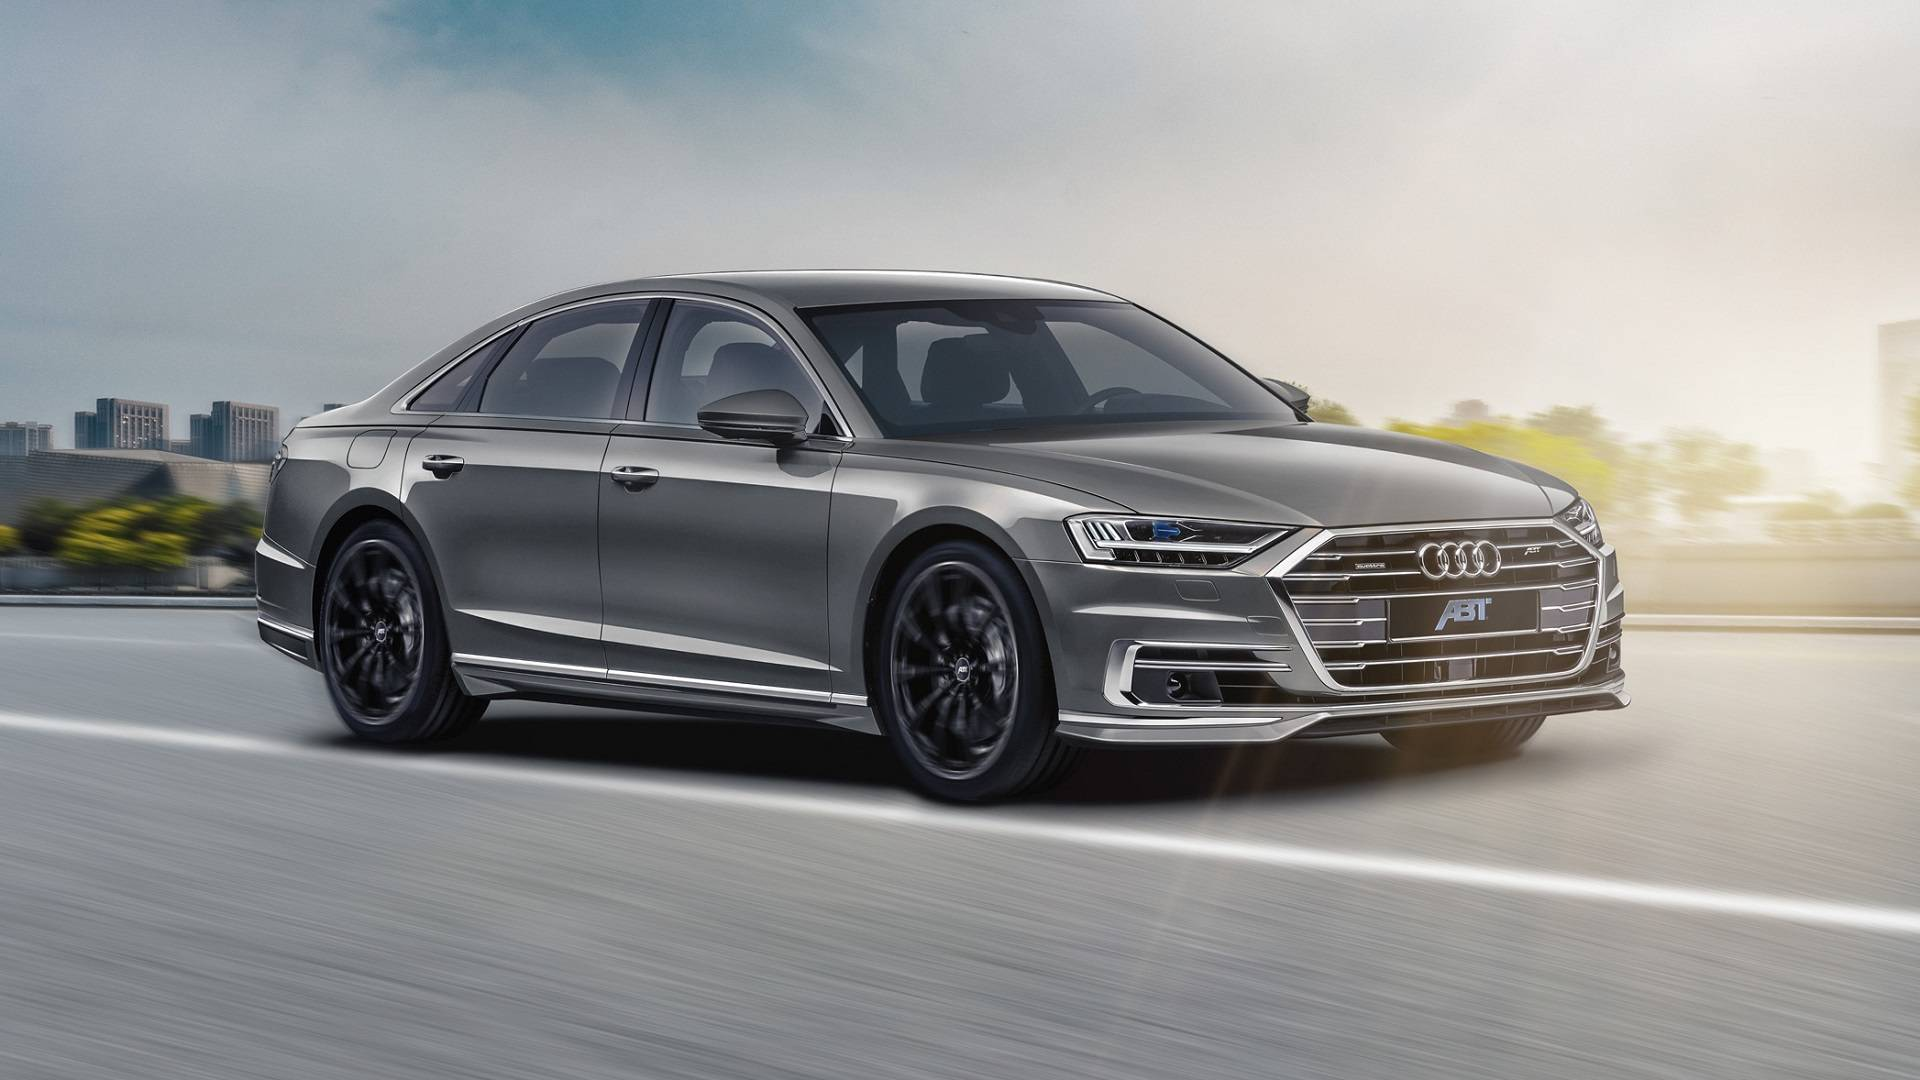 Abt Gives New Audi A8 A Discreet Sporty Touch